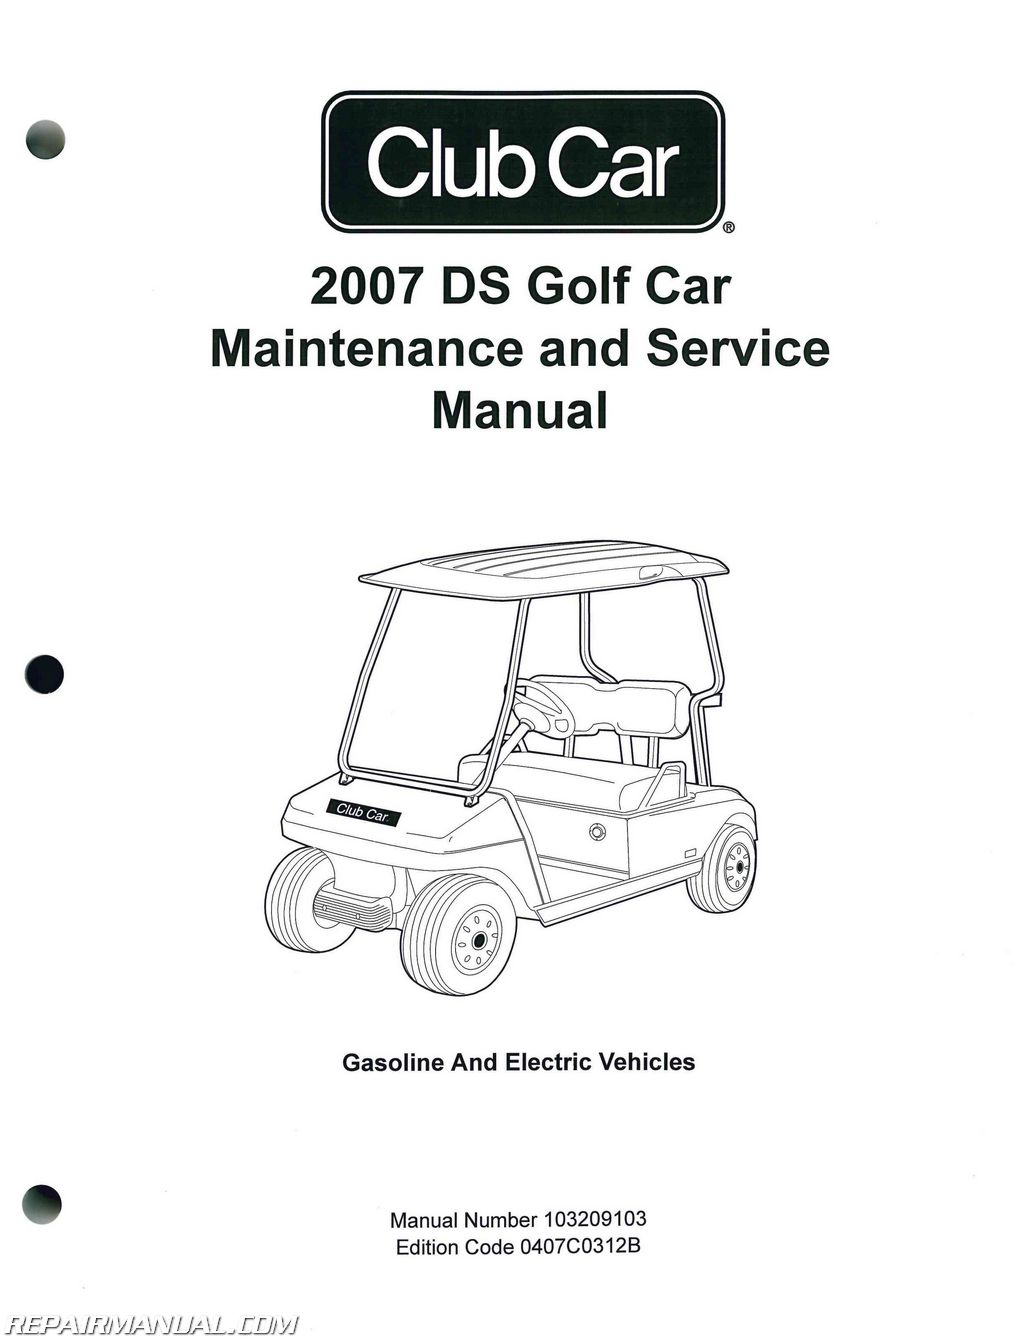 hight resolution of 2007 club car ds golf car gas and